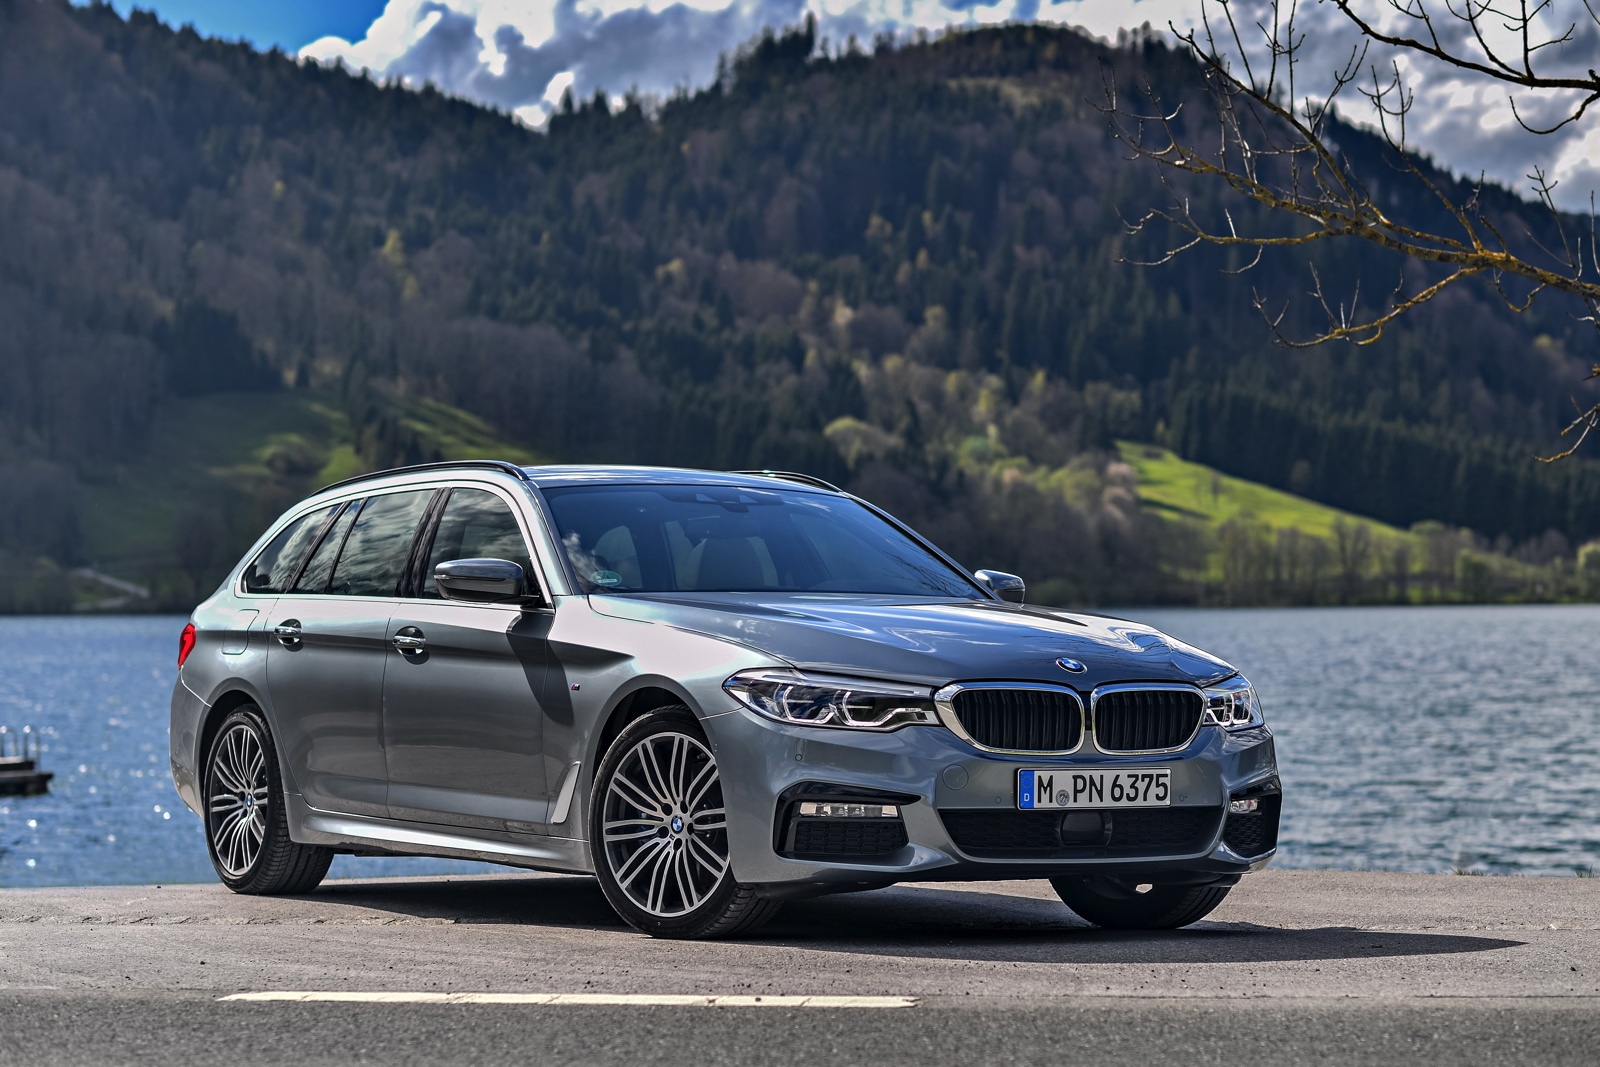 top gear reviews the bmw 5 series touring. Black Bedroom Furniture Sets. Home Design Ideas